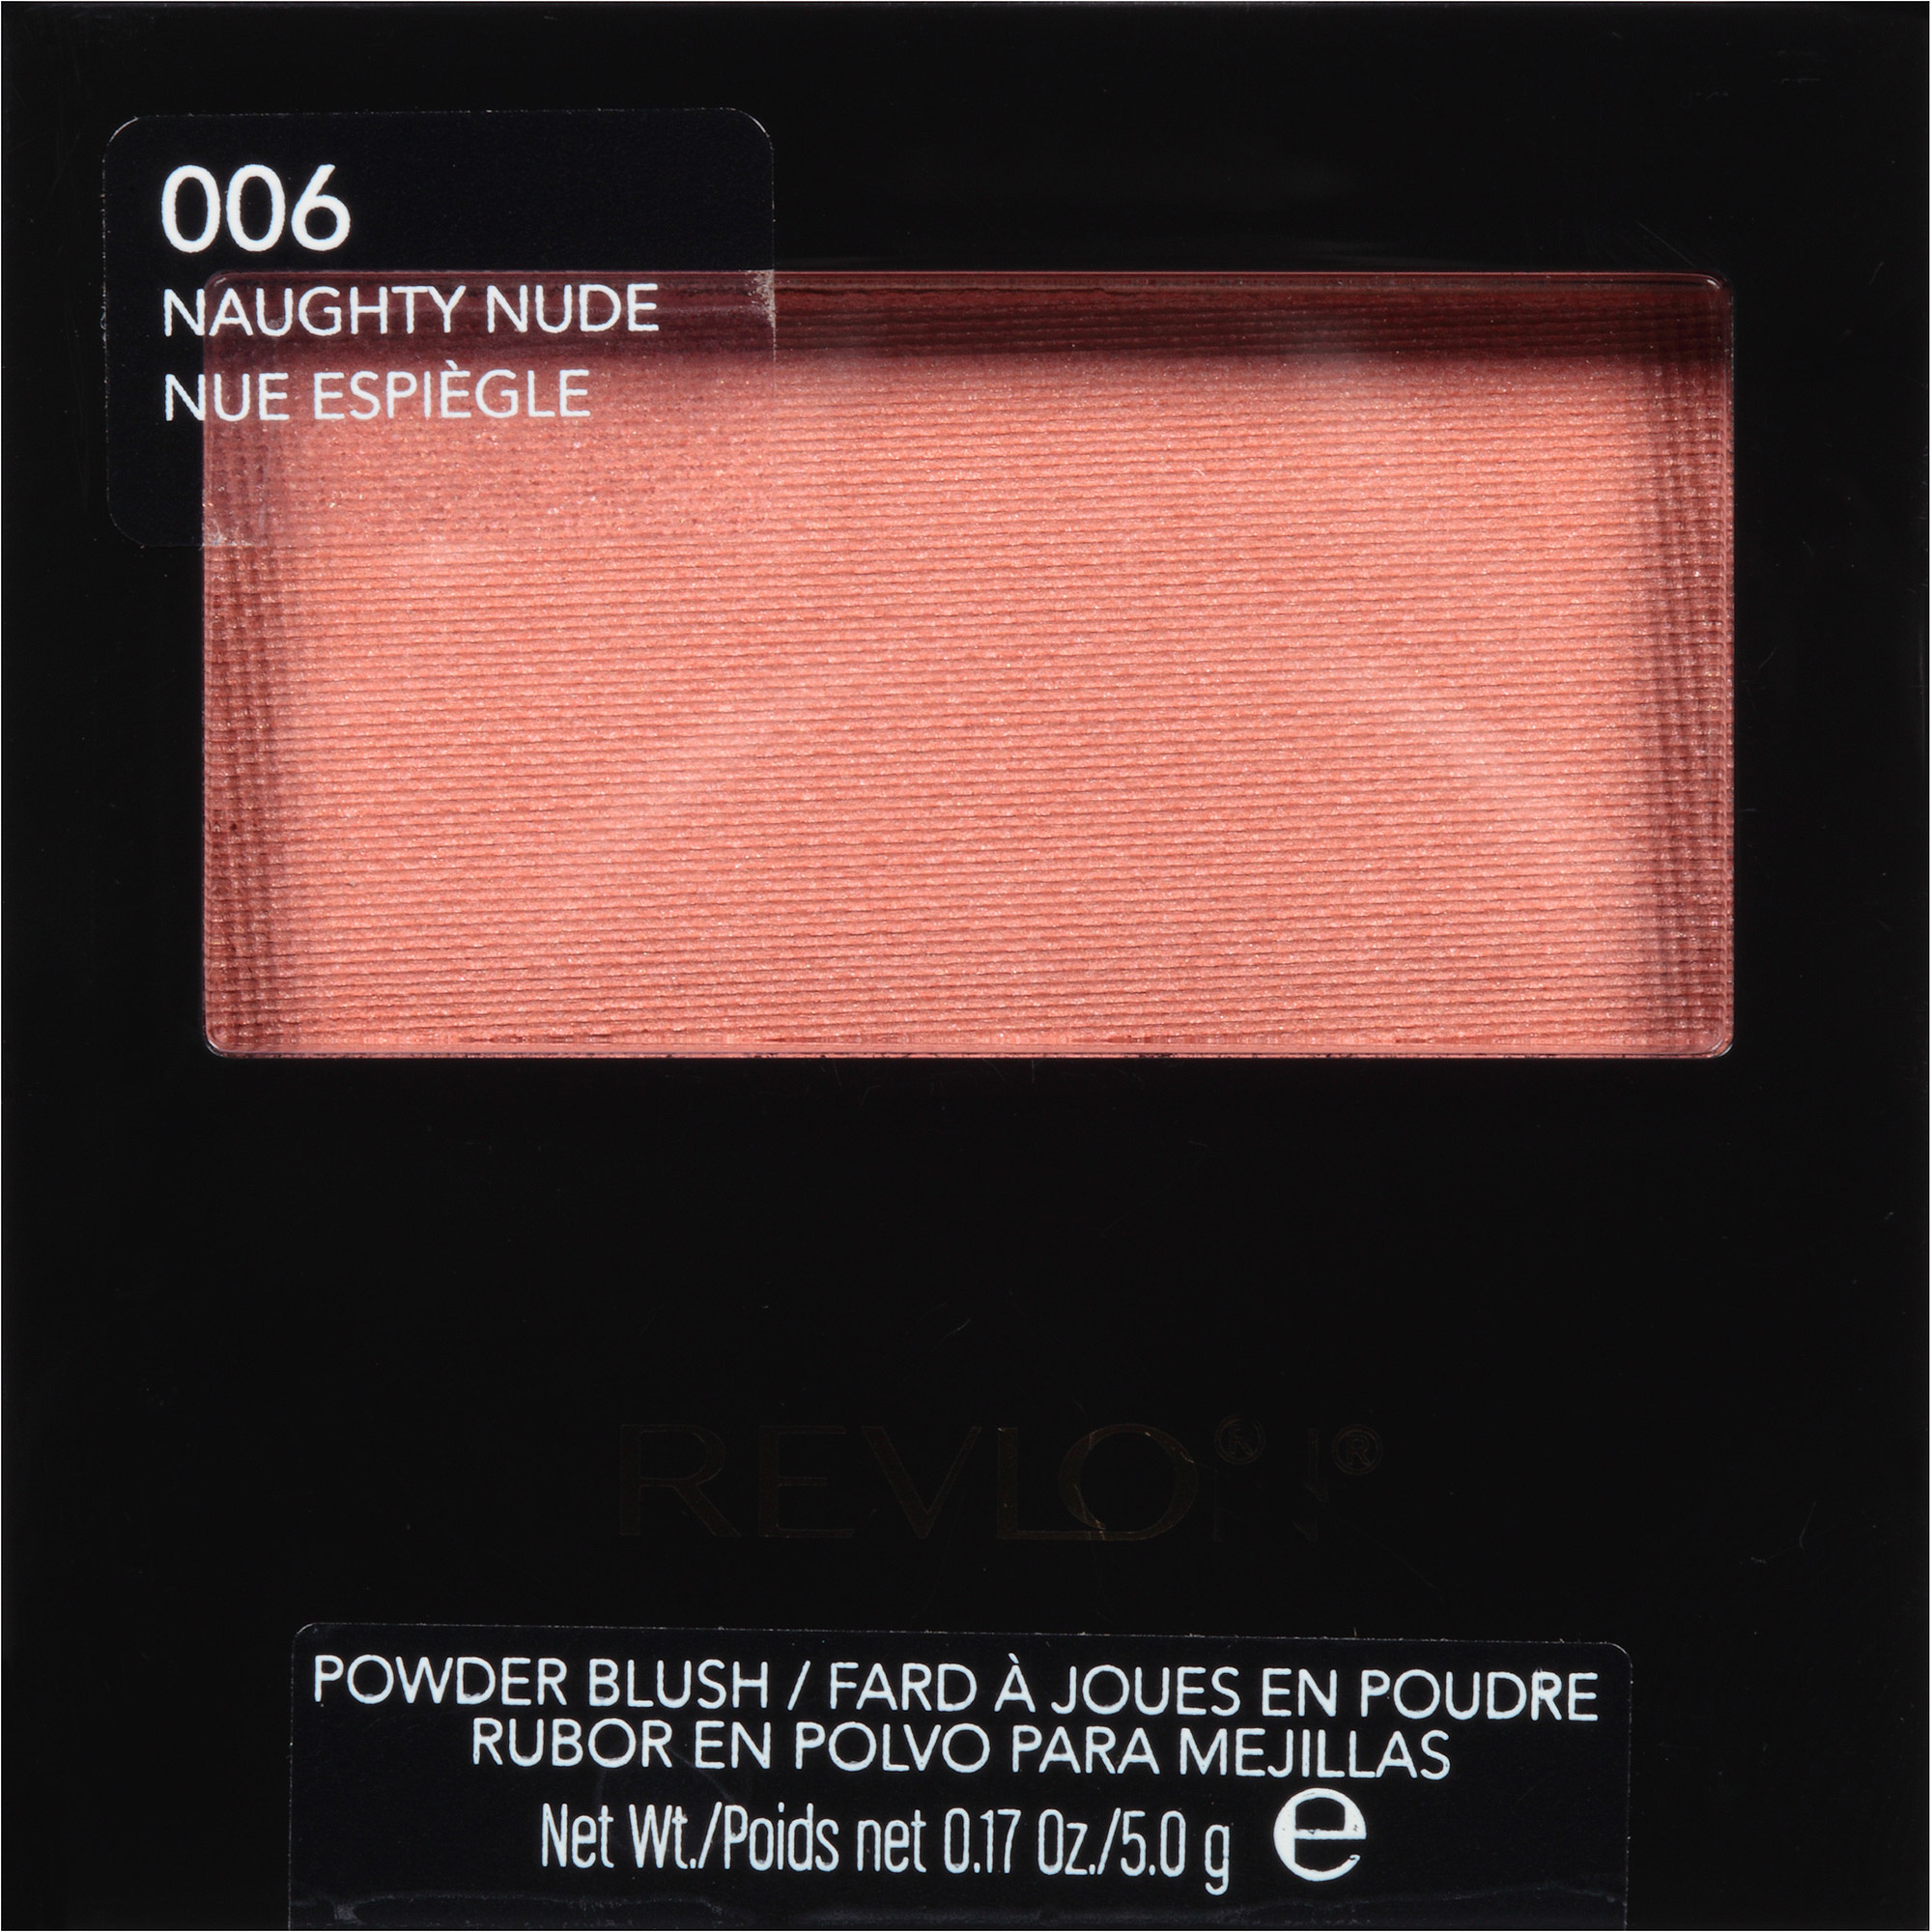 Revlon Powder Blush, 006 Naughty Nude, 0.17 oz